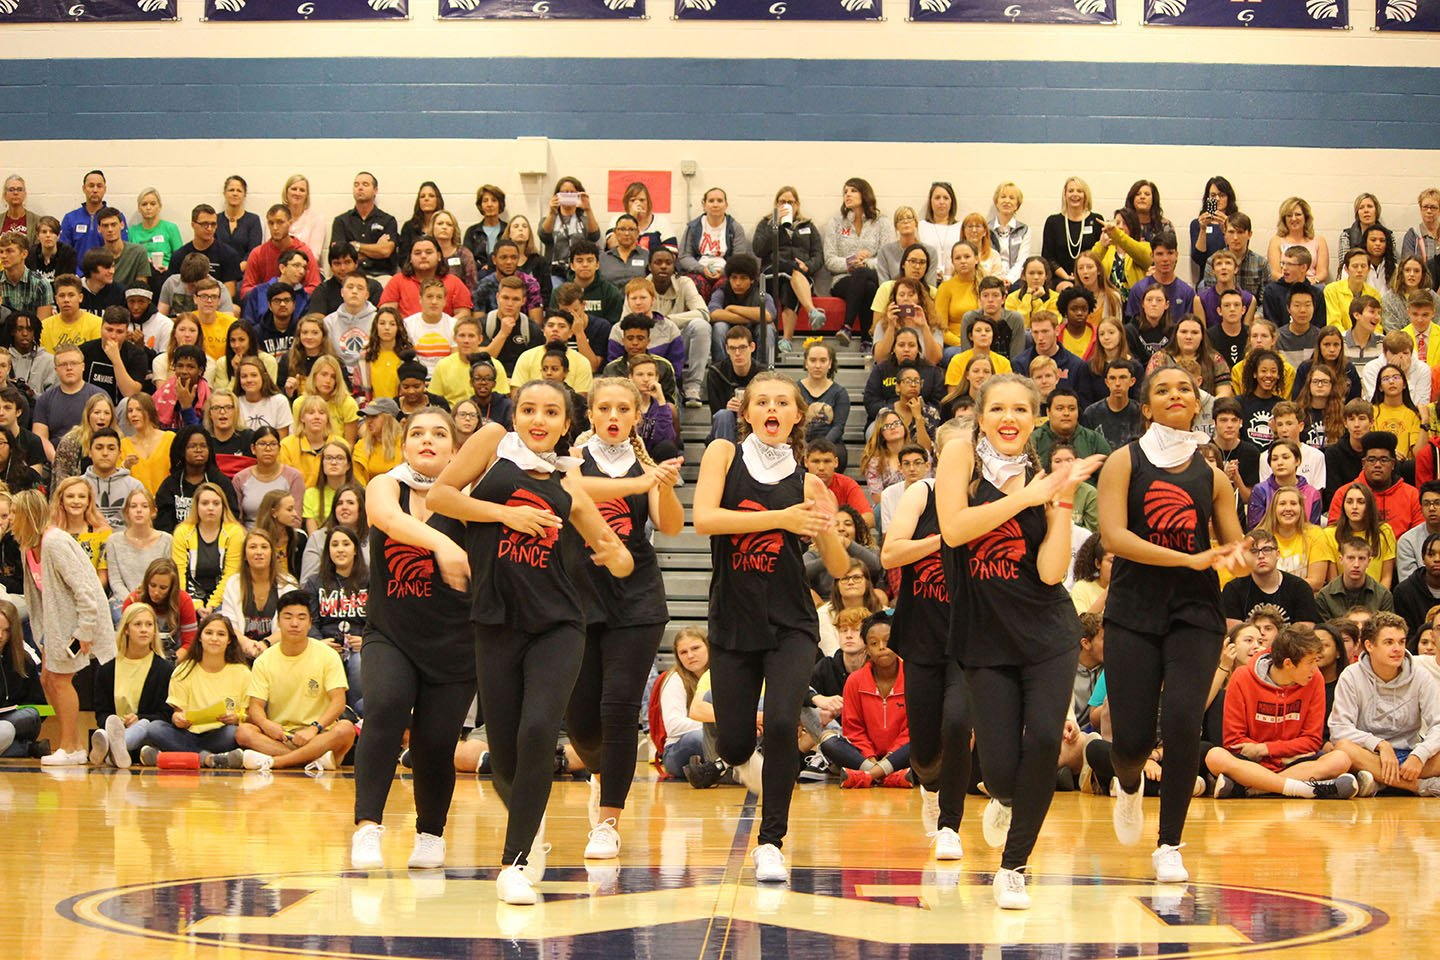 Dance It Up. The Manhattan High School dance team performs their up beat routine during Wednesday September 26. The crowd got riled up and was excited for the next event after the dance team.